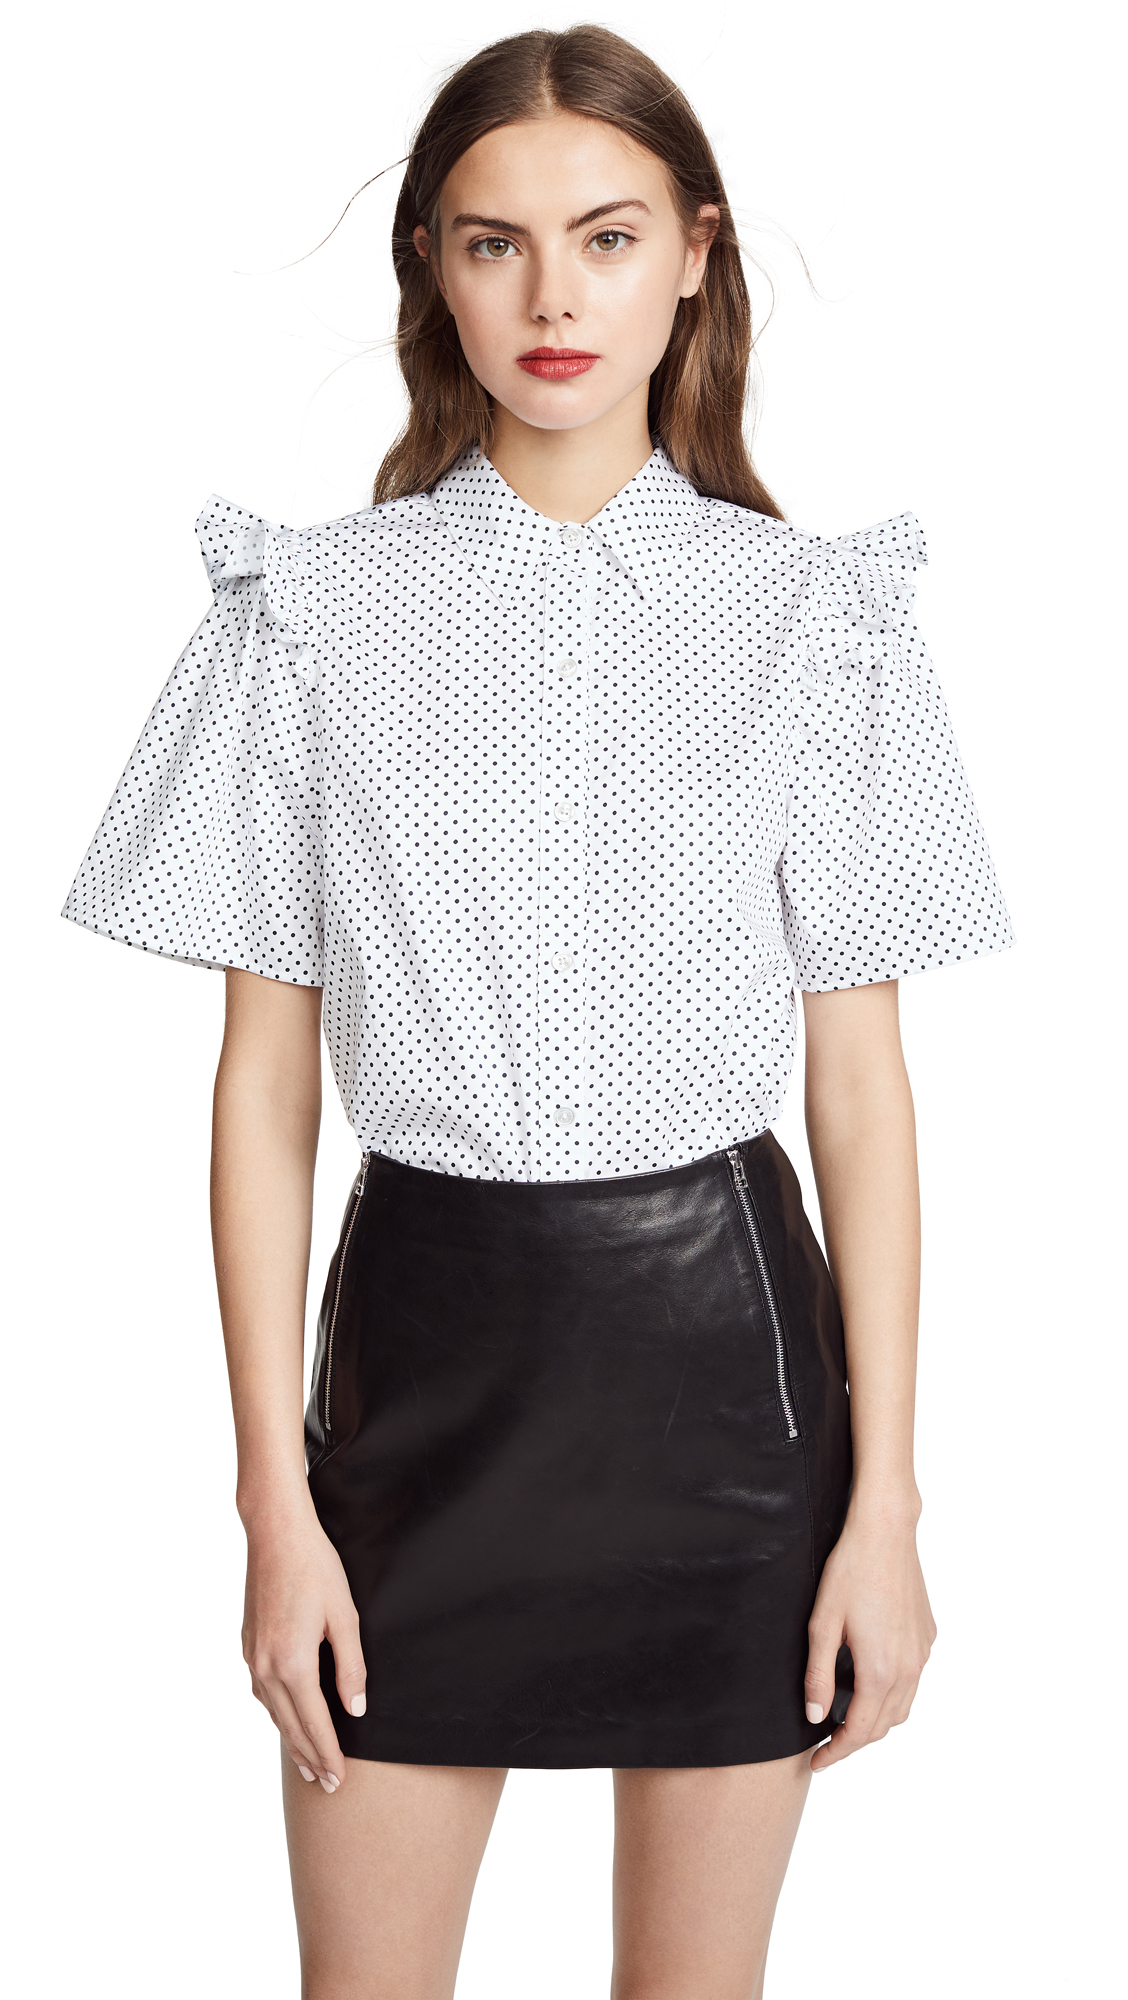 Clu Polka Dot Shirt with Ruffle In White